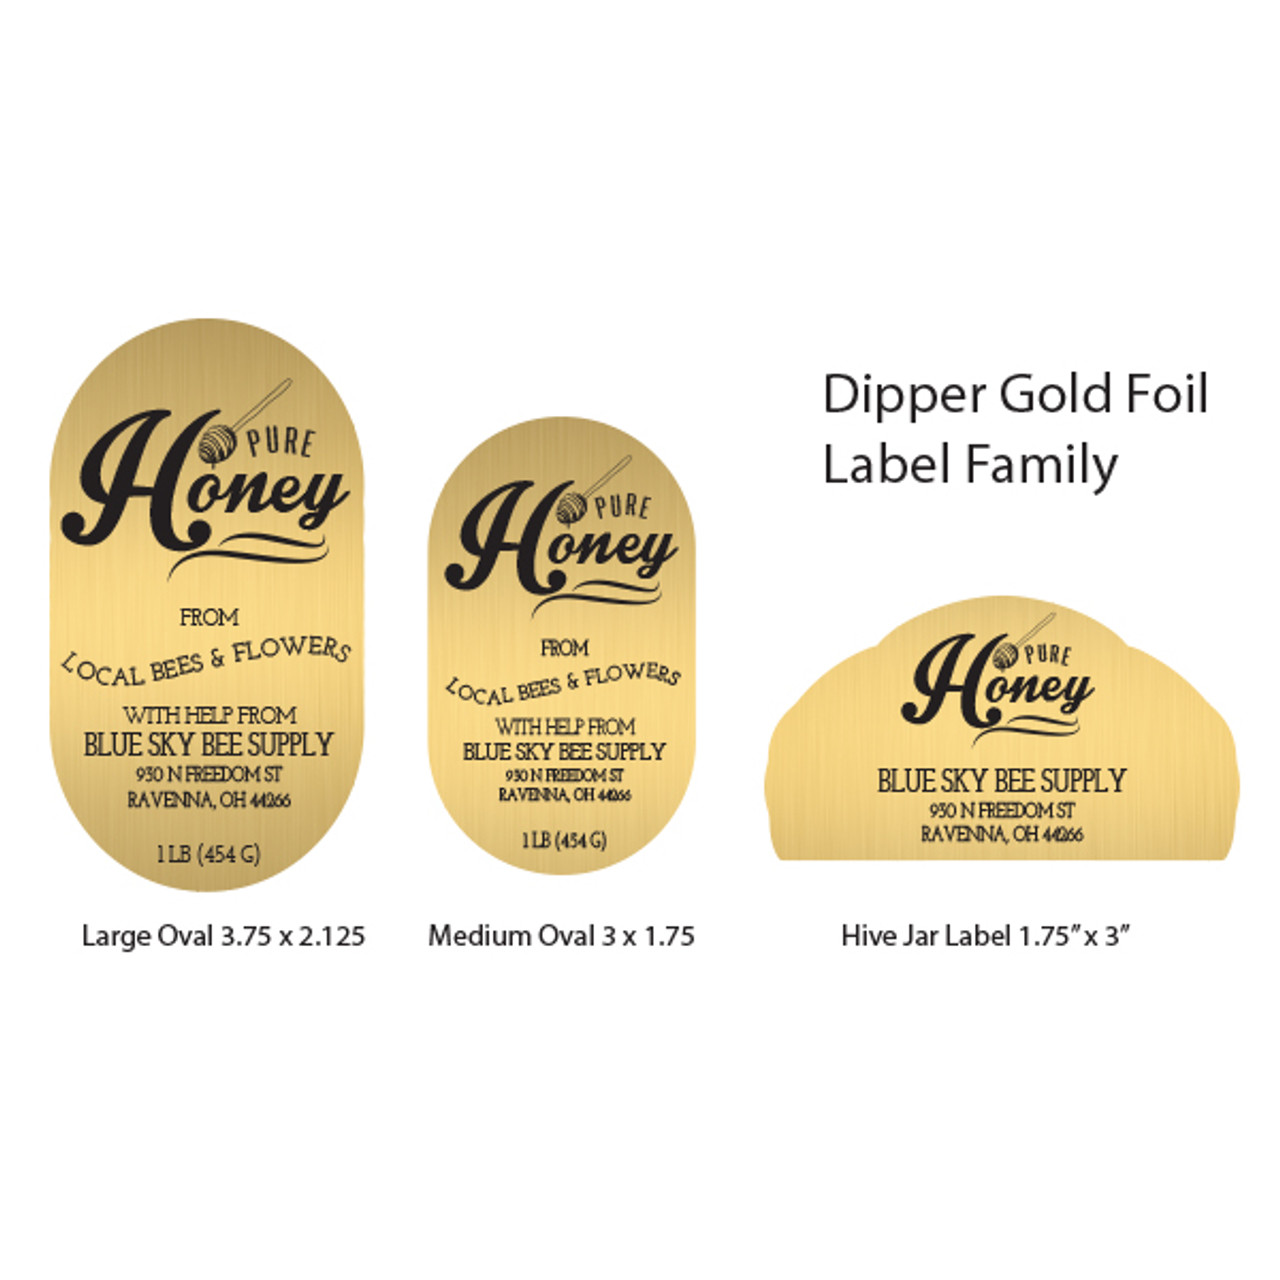 Popular Gold Foil Labels - blueskybeesupply.com DQ64